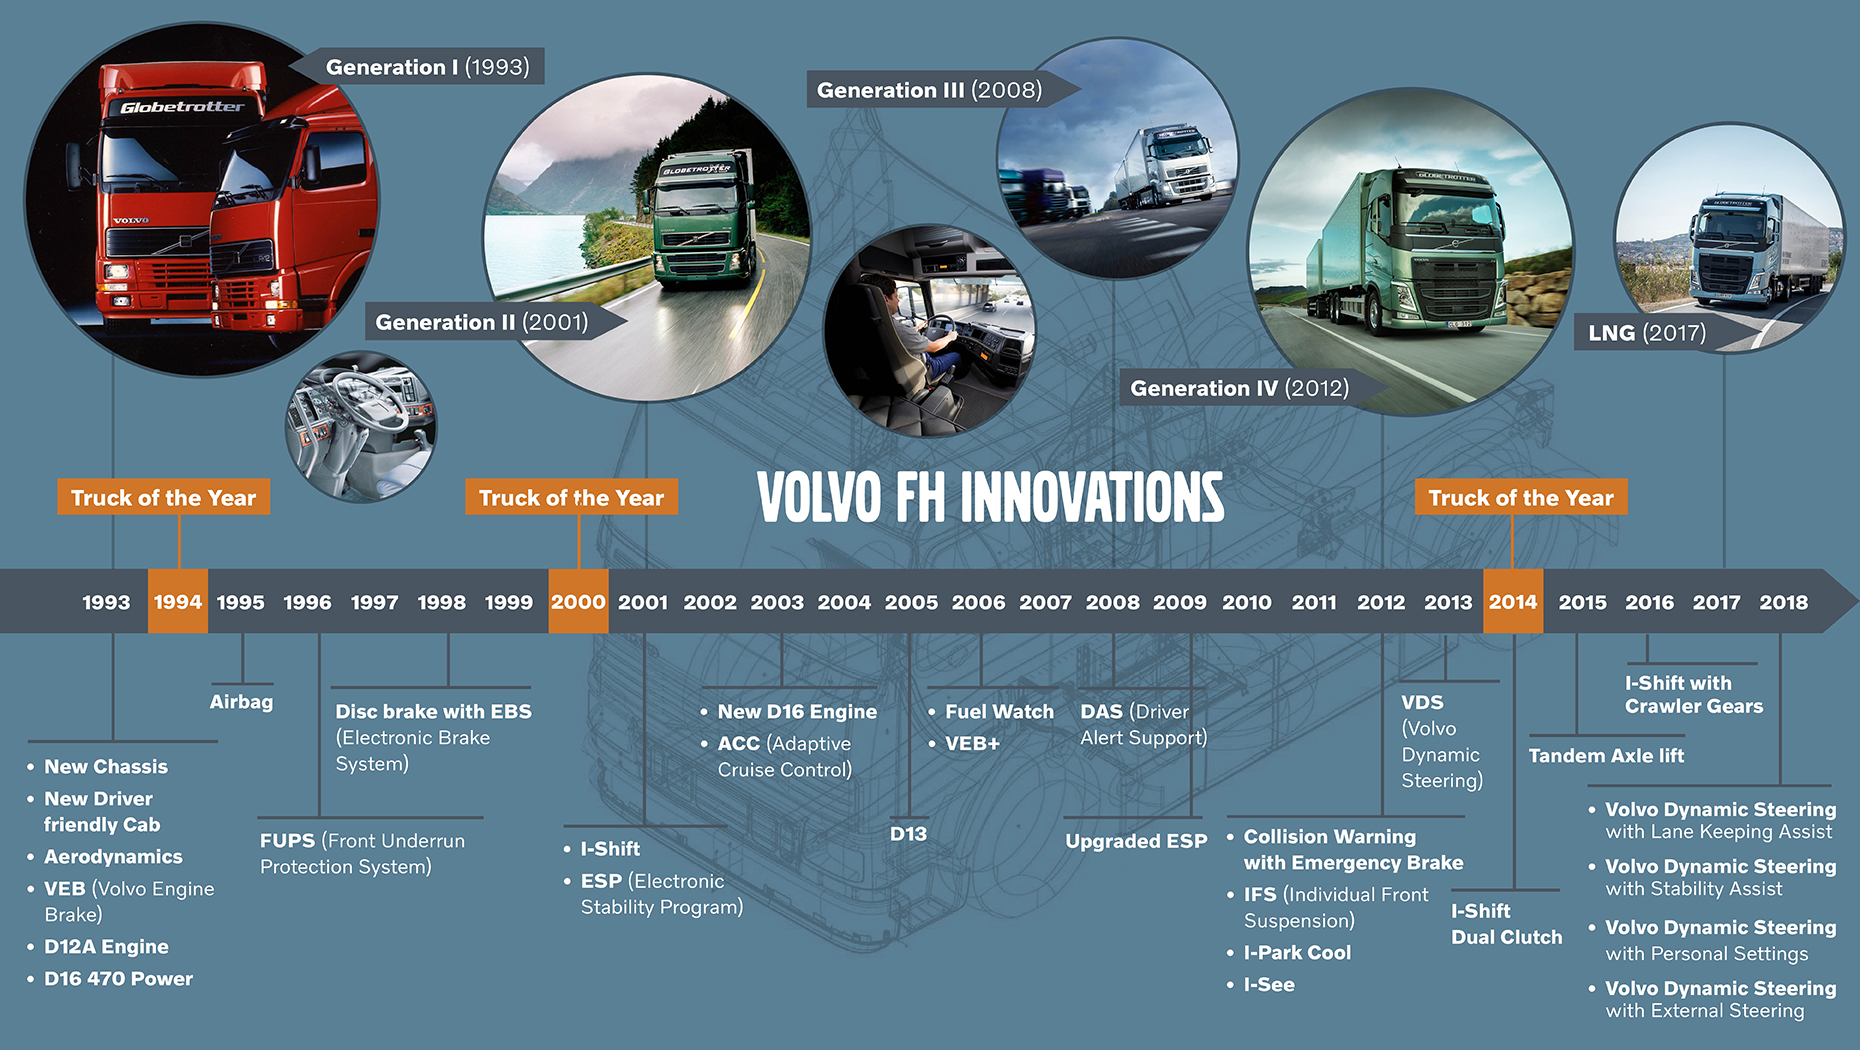 Volvo FH Innovations timeline